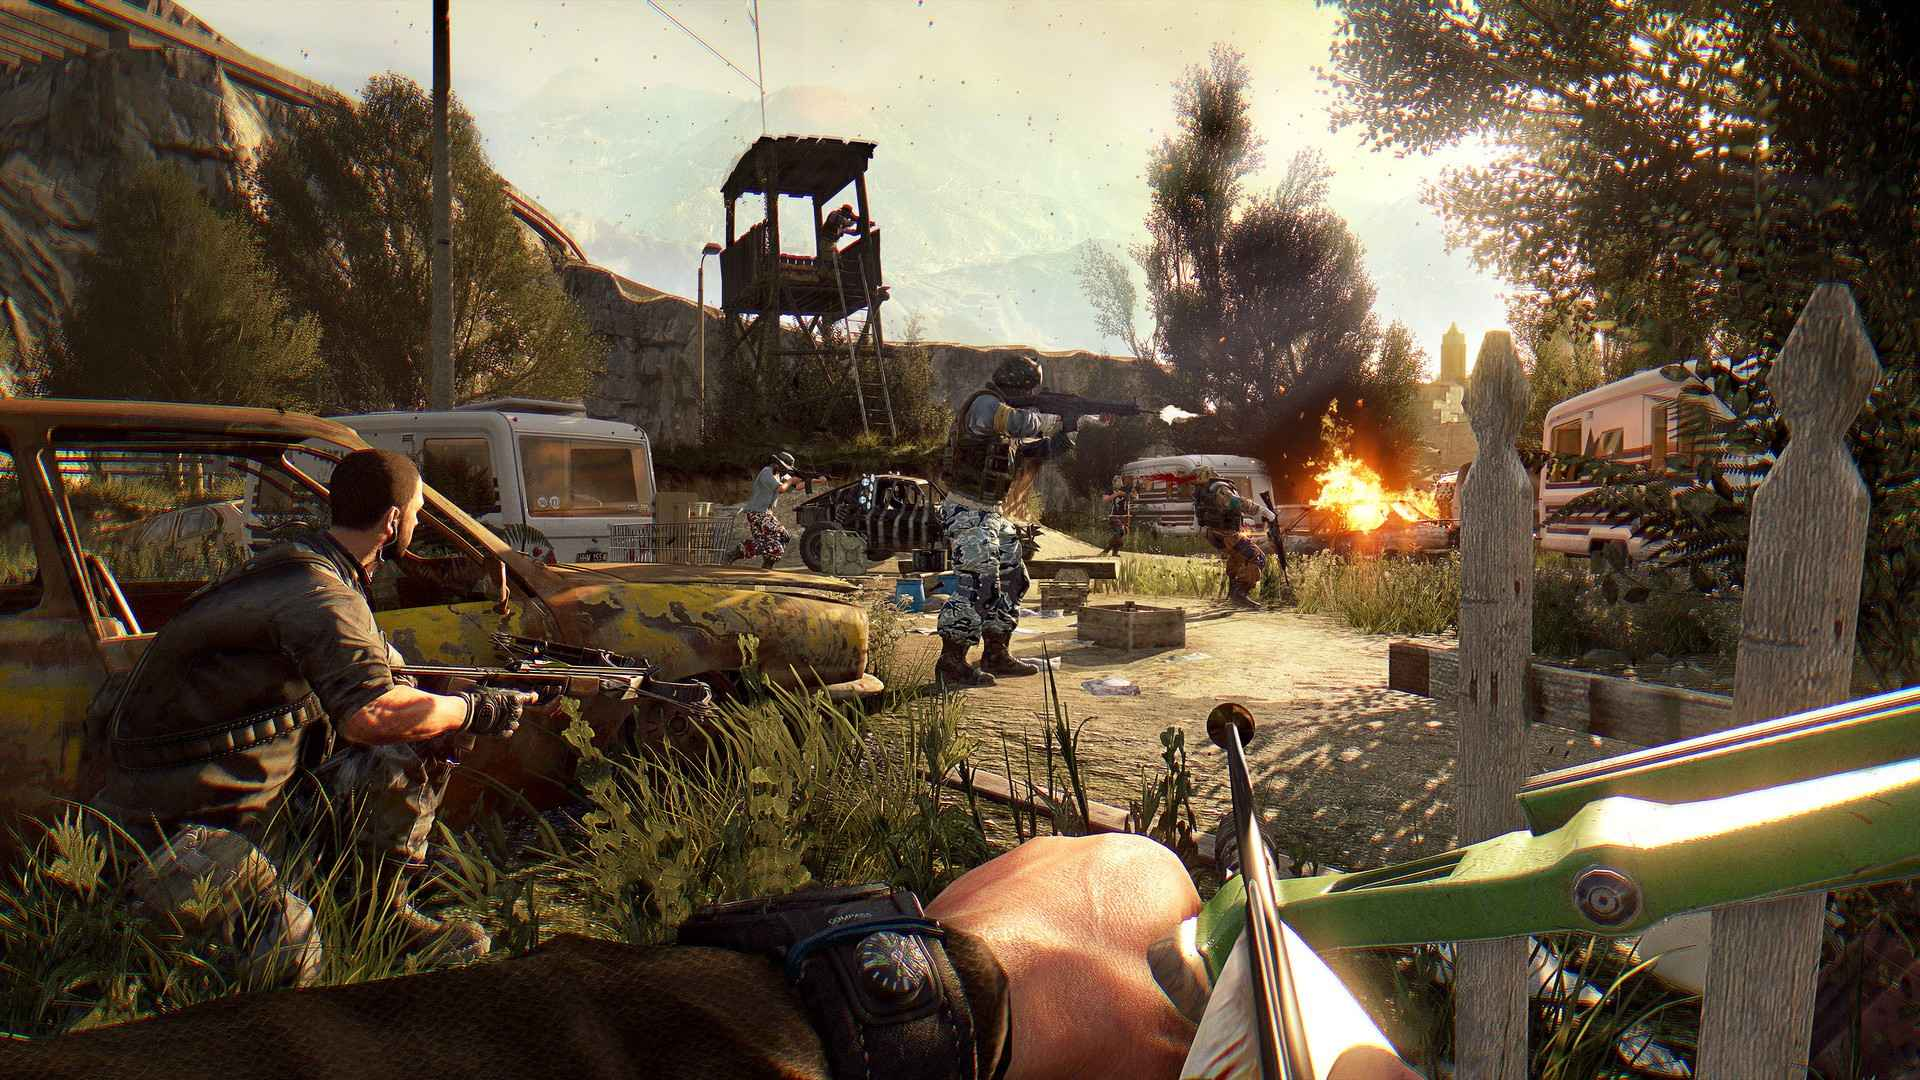 Dying Light Content Drop 2 delivers Gun Silencer today